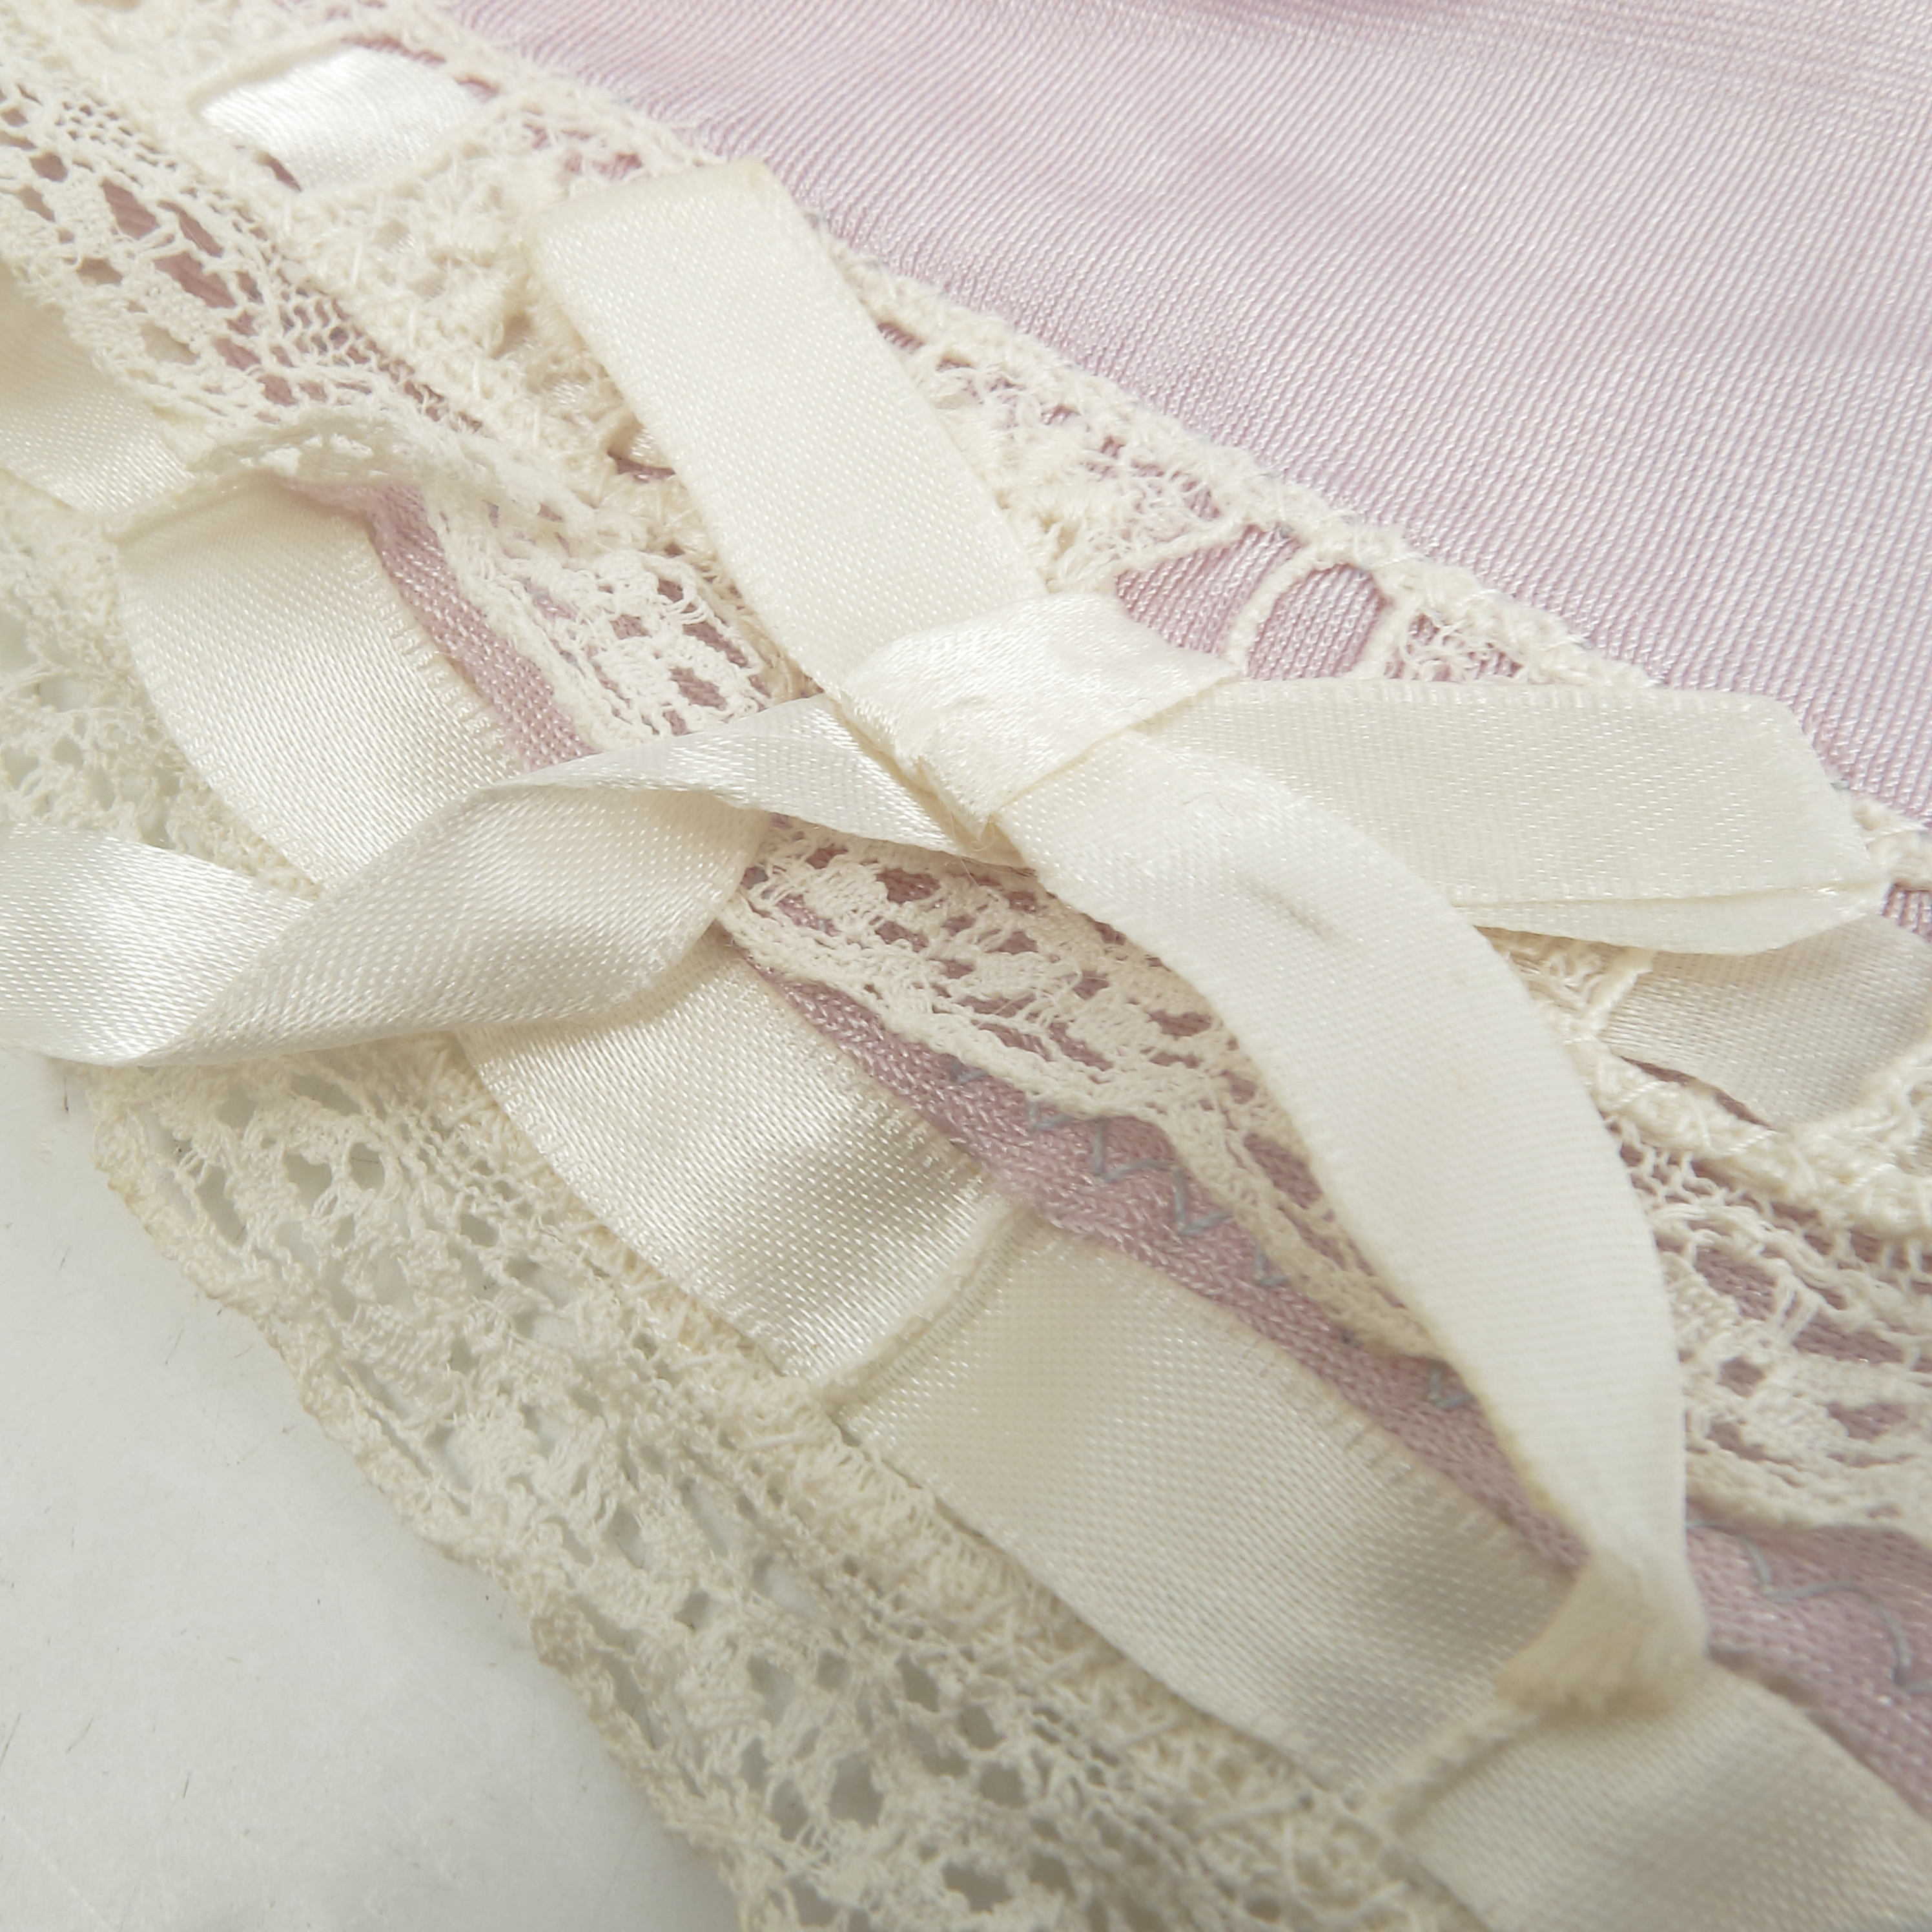 Eva Braun, a pair of under garments, with lace and ribbon trim, embroidered with her initials, - Image 4 of 4